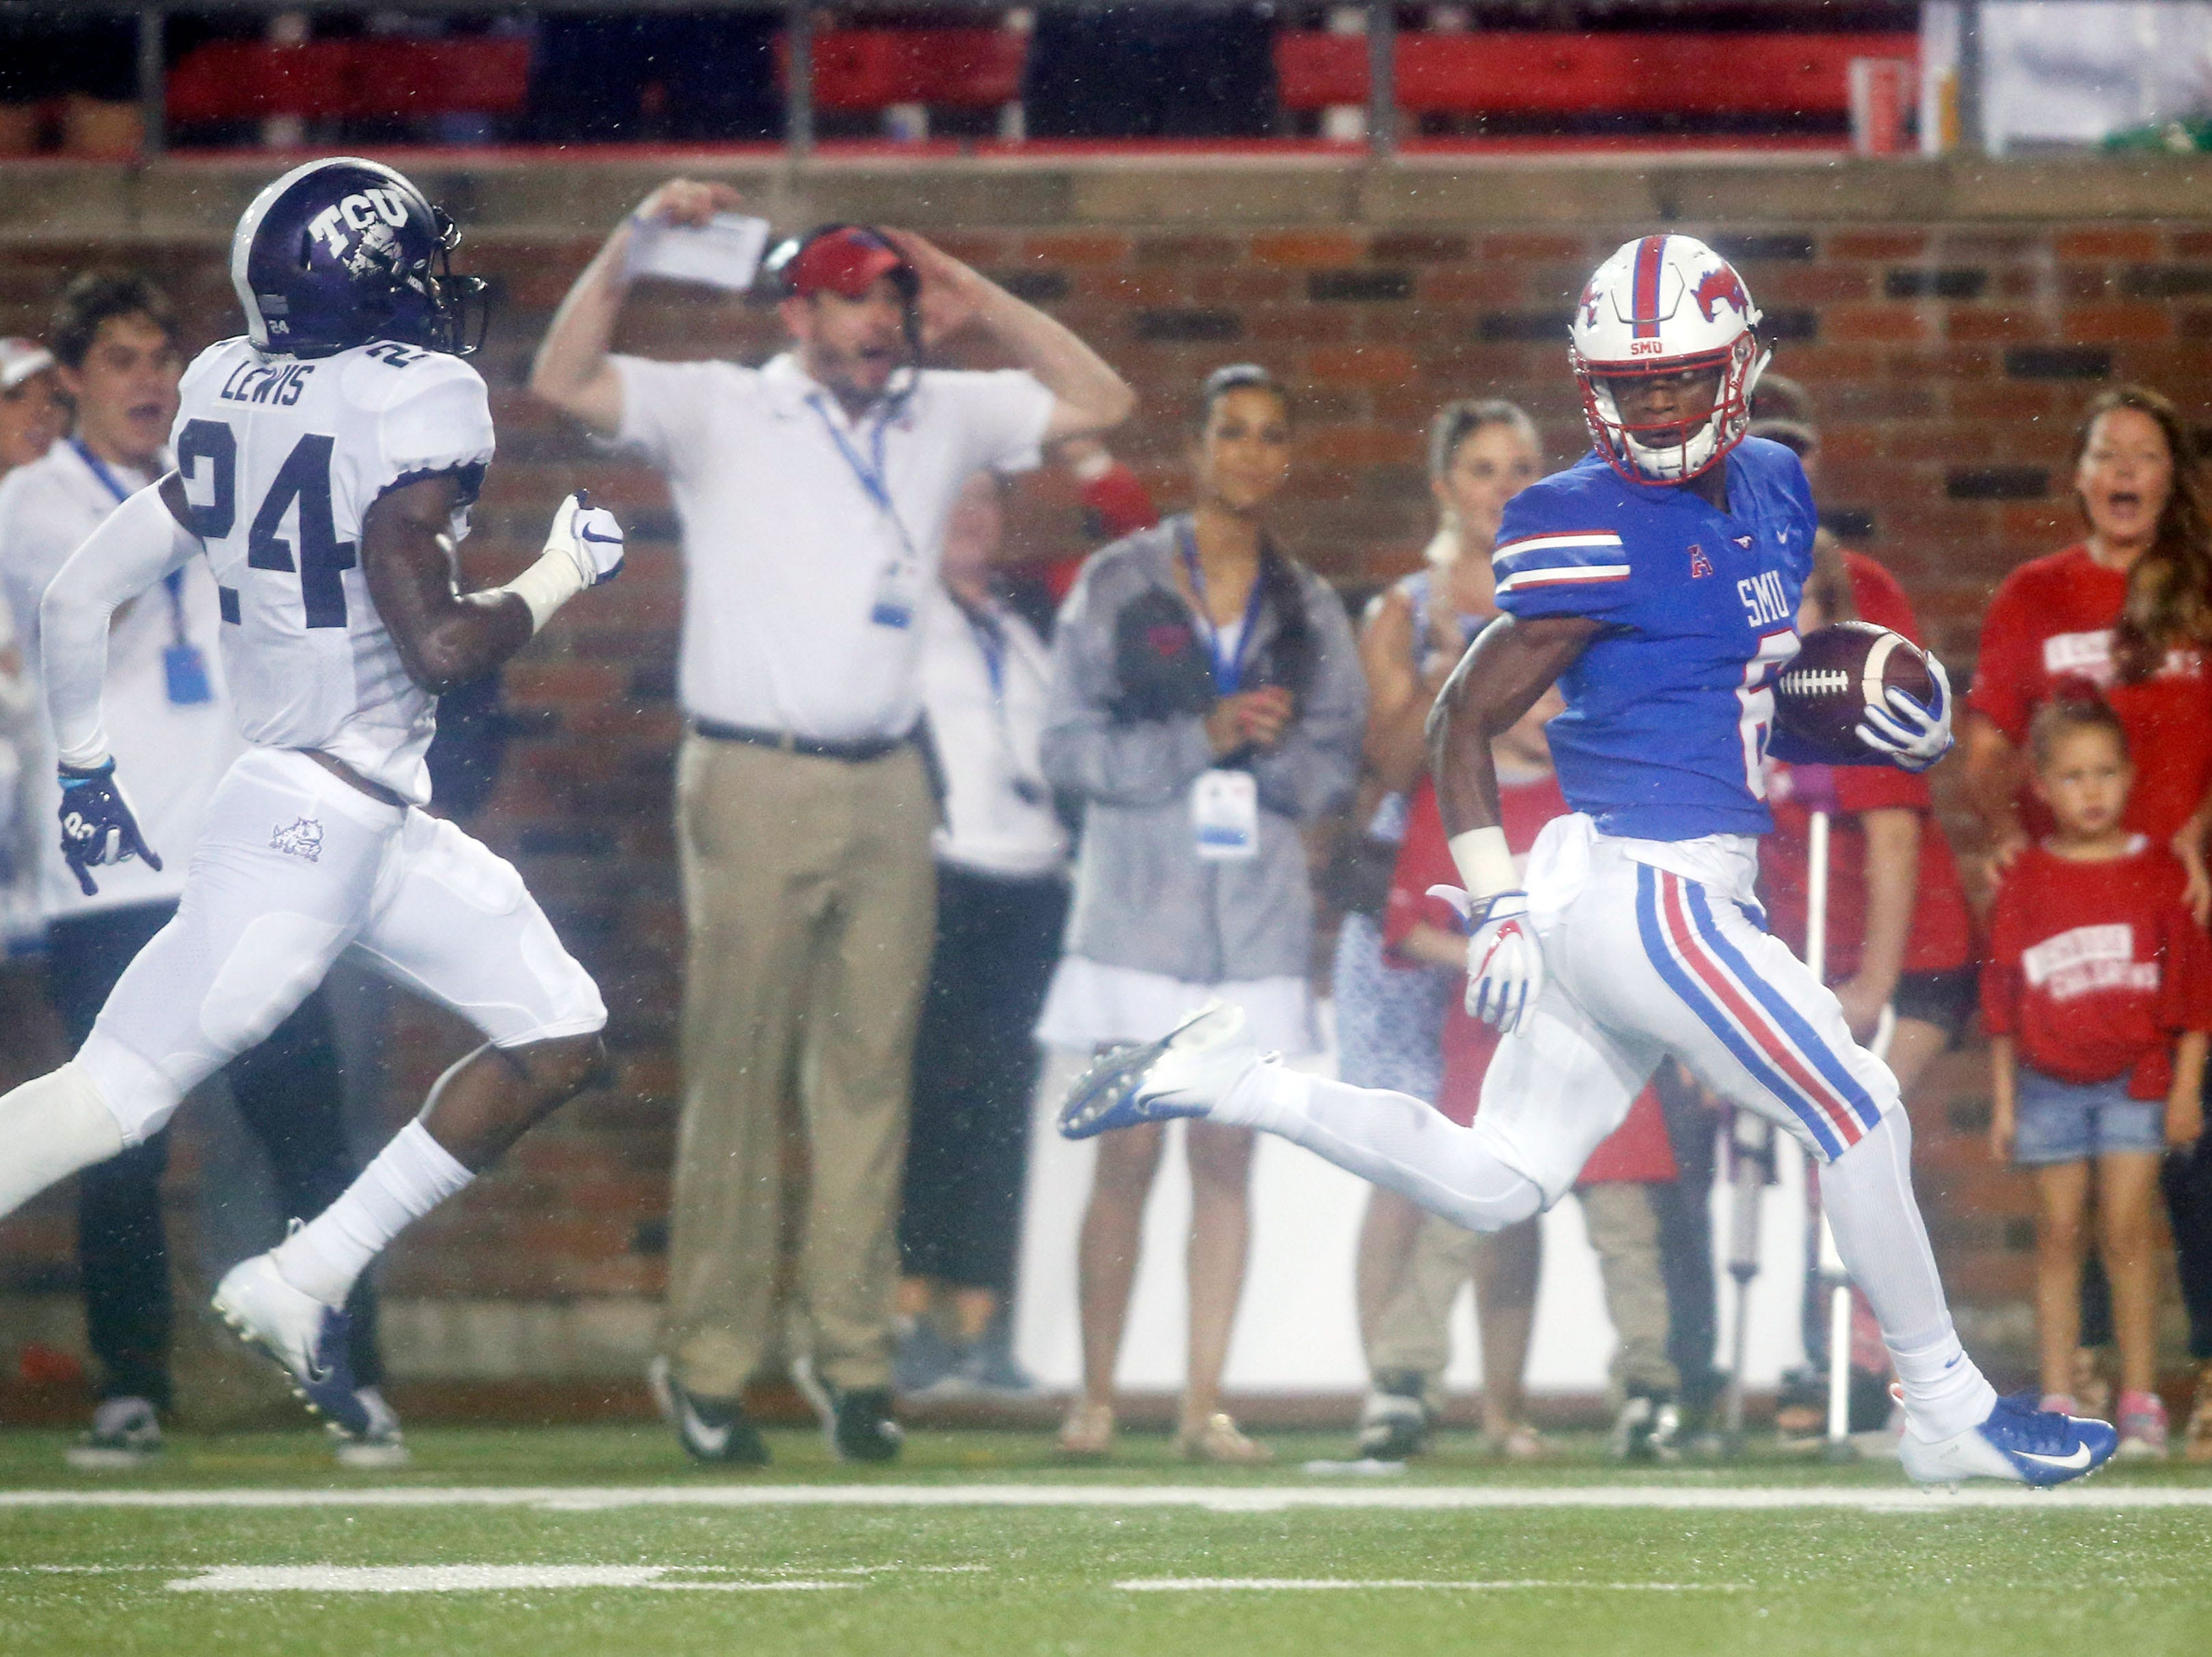 Southern Methodist Mustangs running back Braeden West (6) runs for a touchdown against the TCU Horned Frogs.